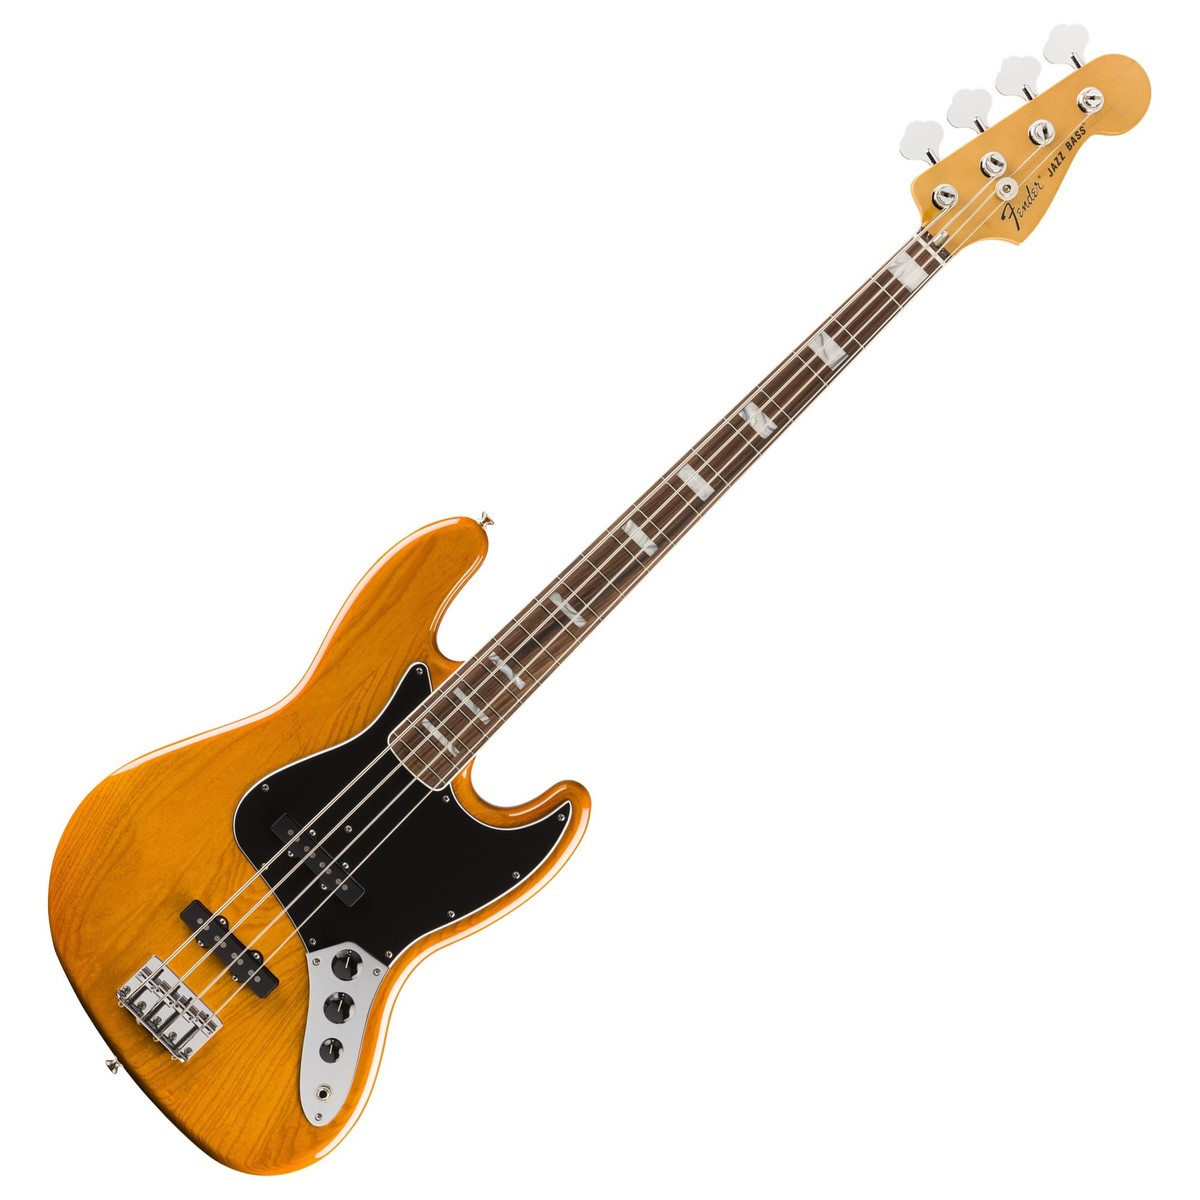 fender vintera 70s jazz bass pf aged natural at gear4music. Black Bedroom Furniture Sets. Home Design Ideas